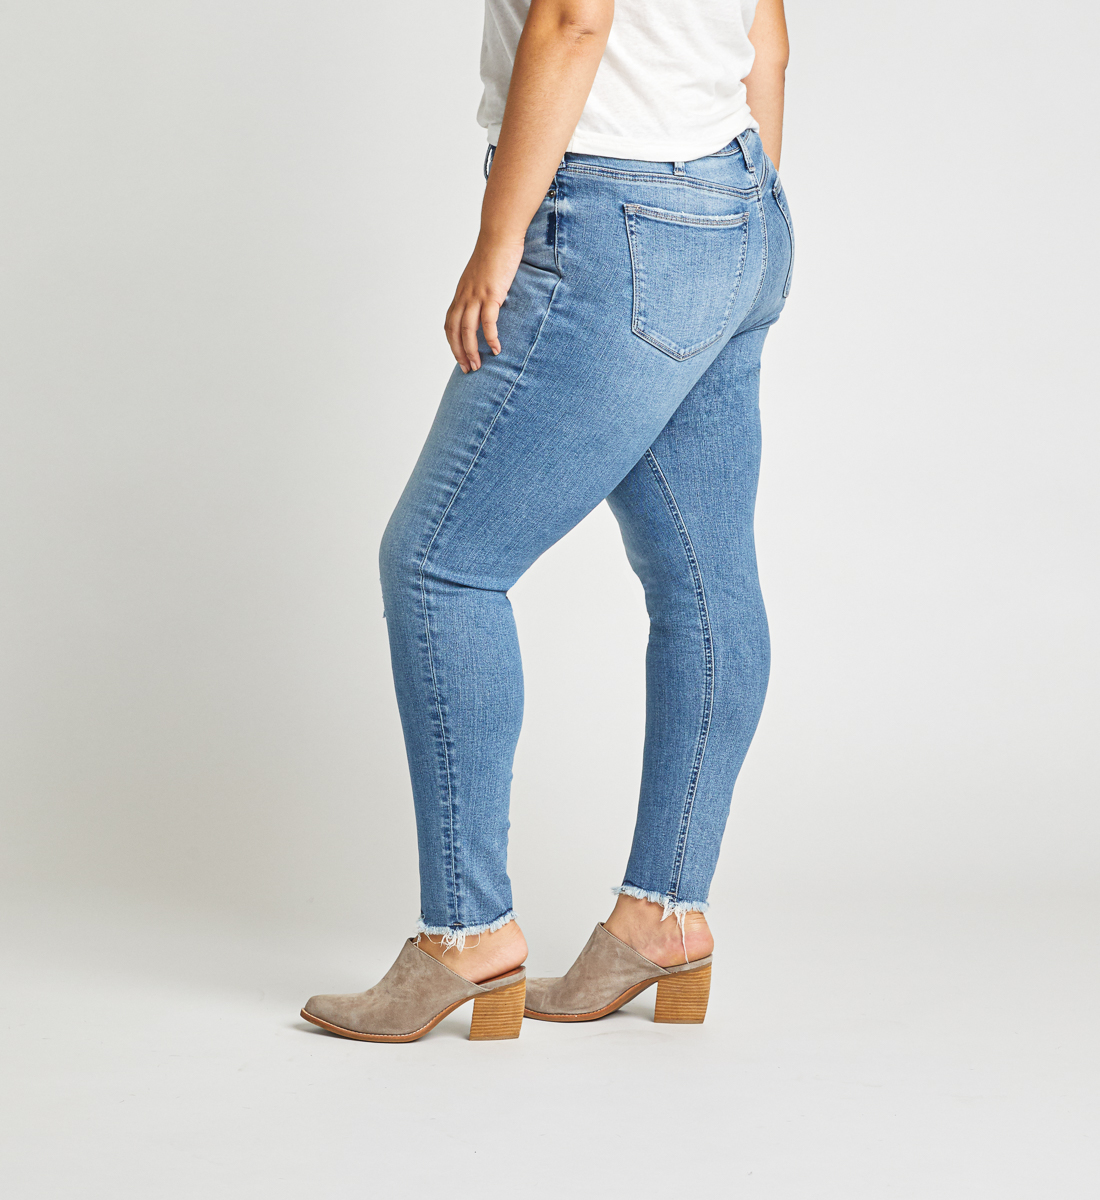 High Note High Rise Skinny Jeans Plus Size Back